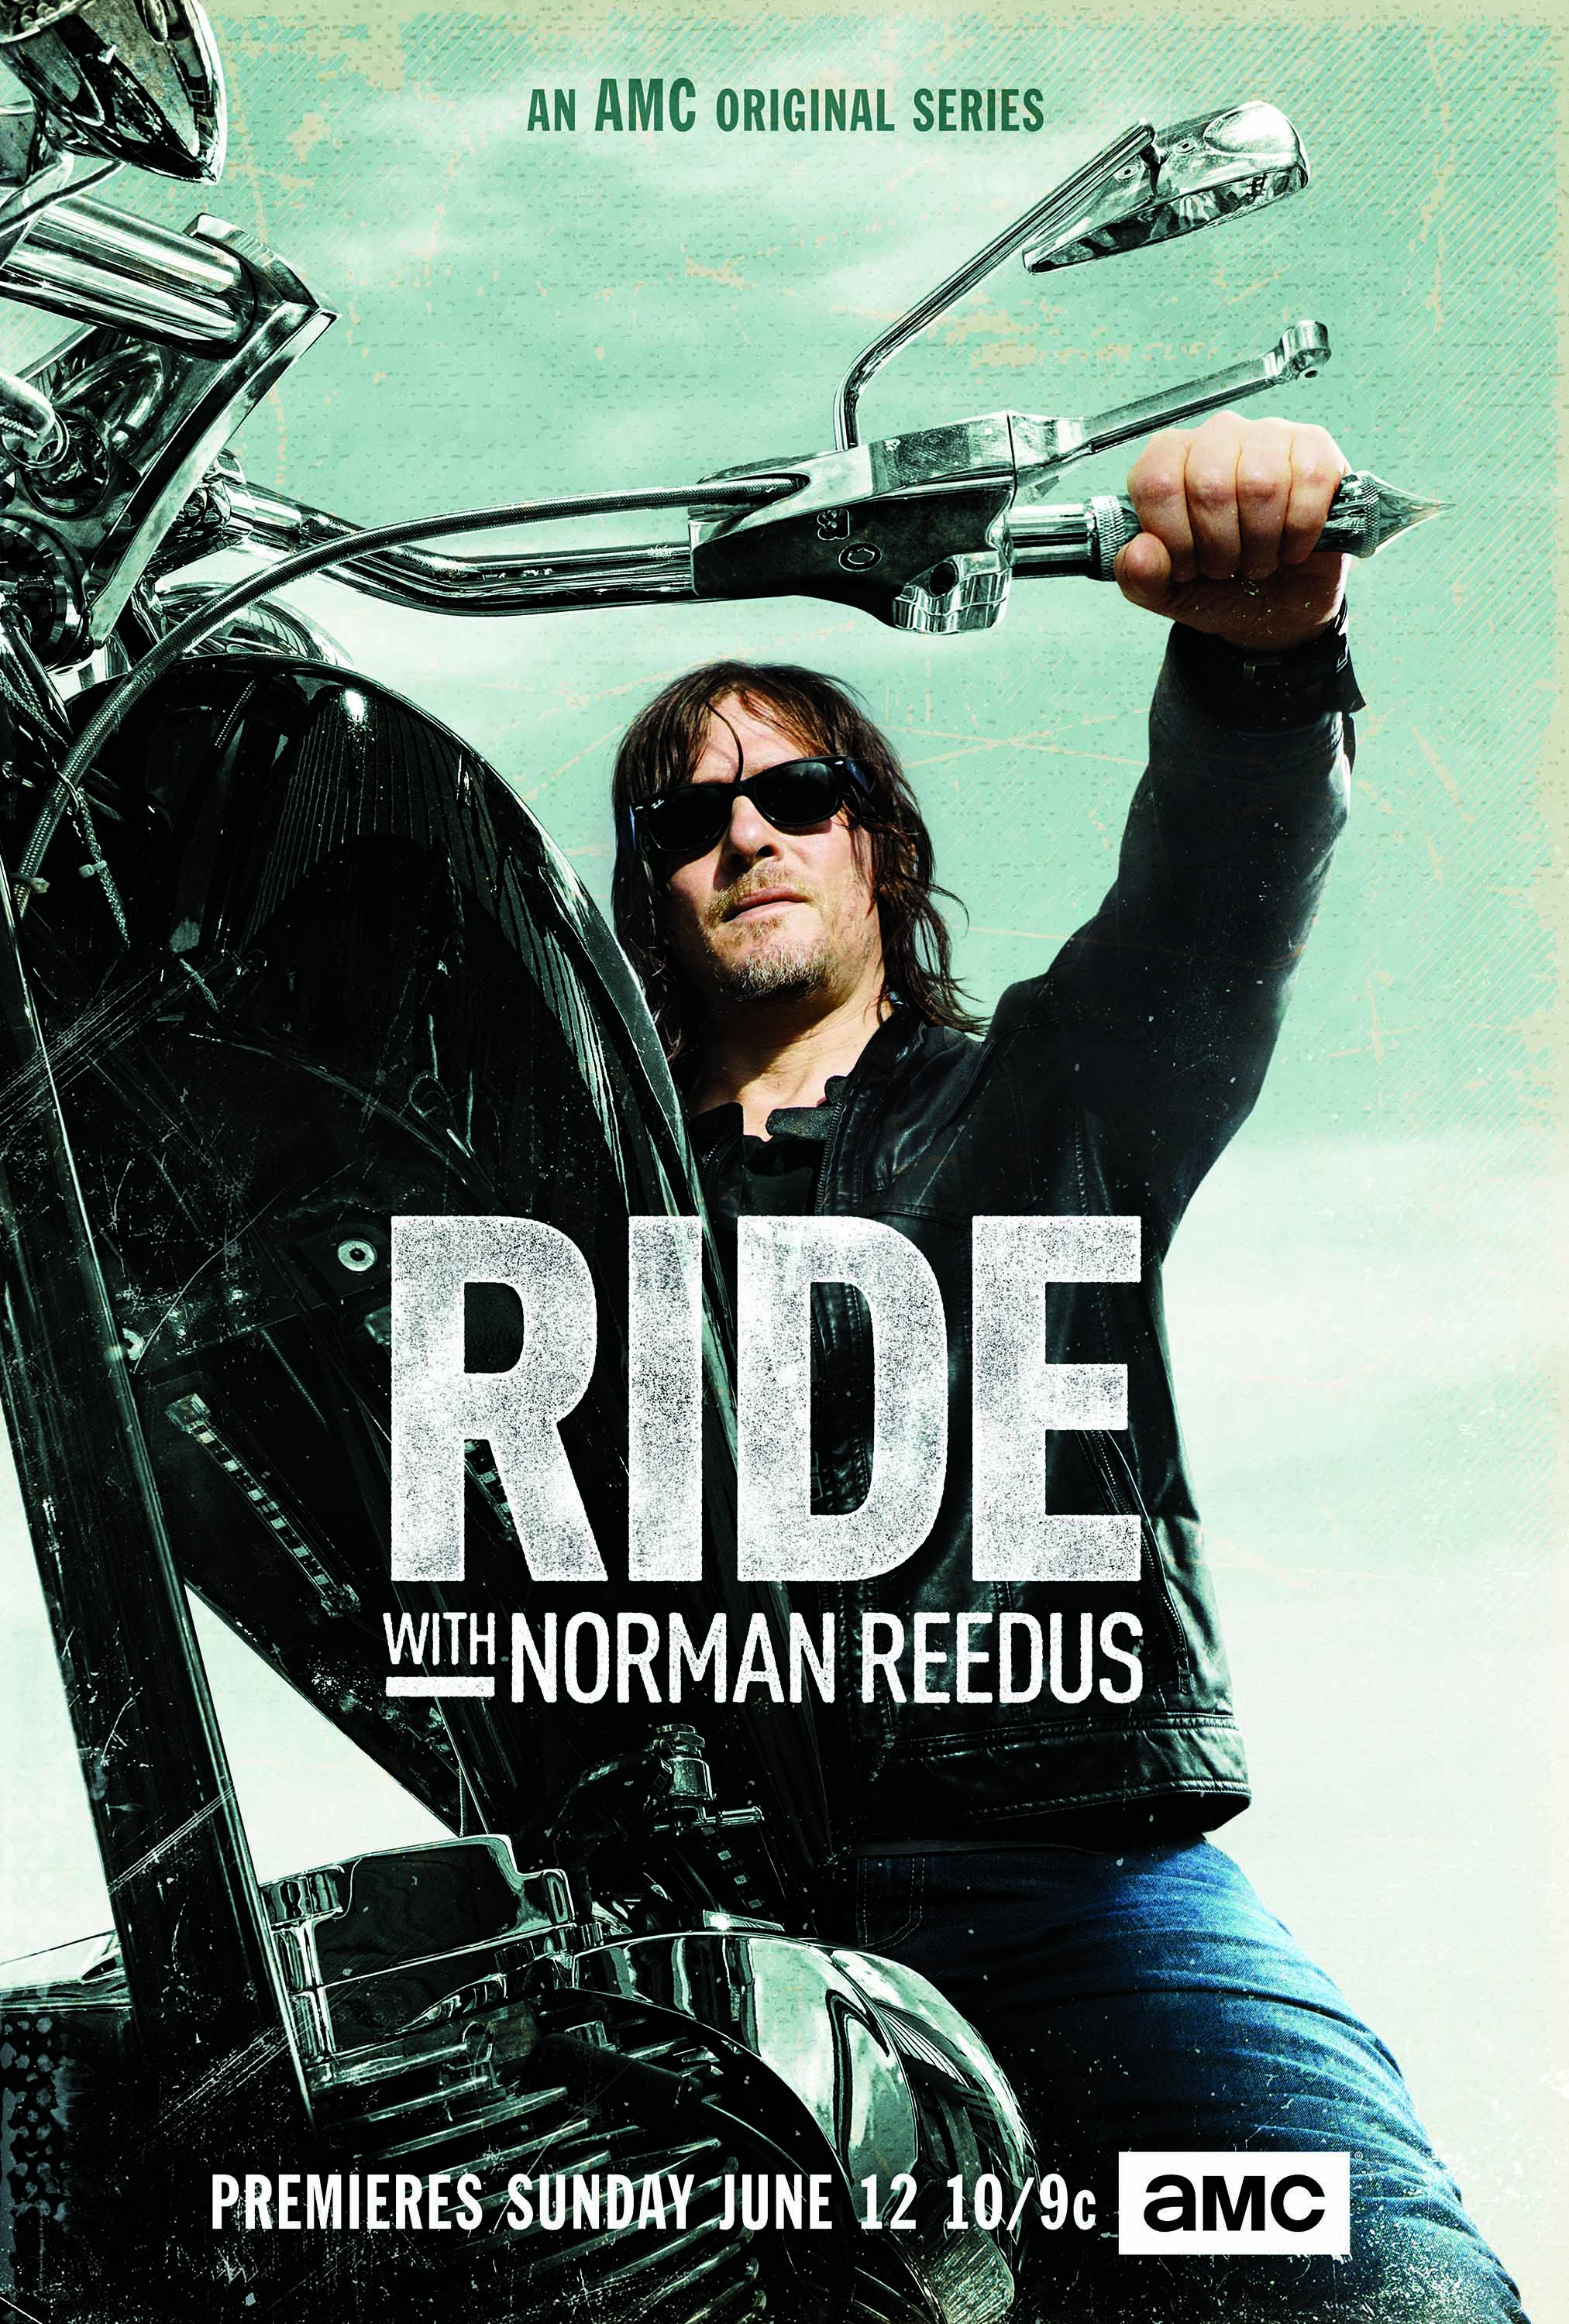 amc-ride-with-norman-reedus-1